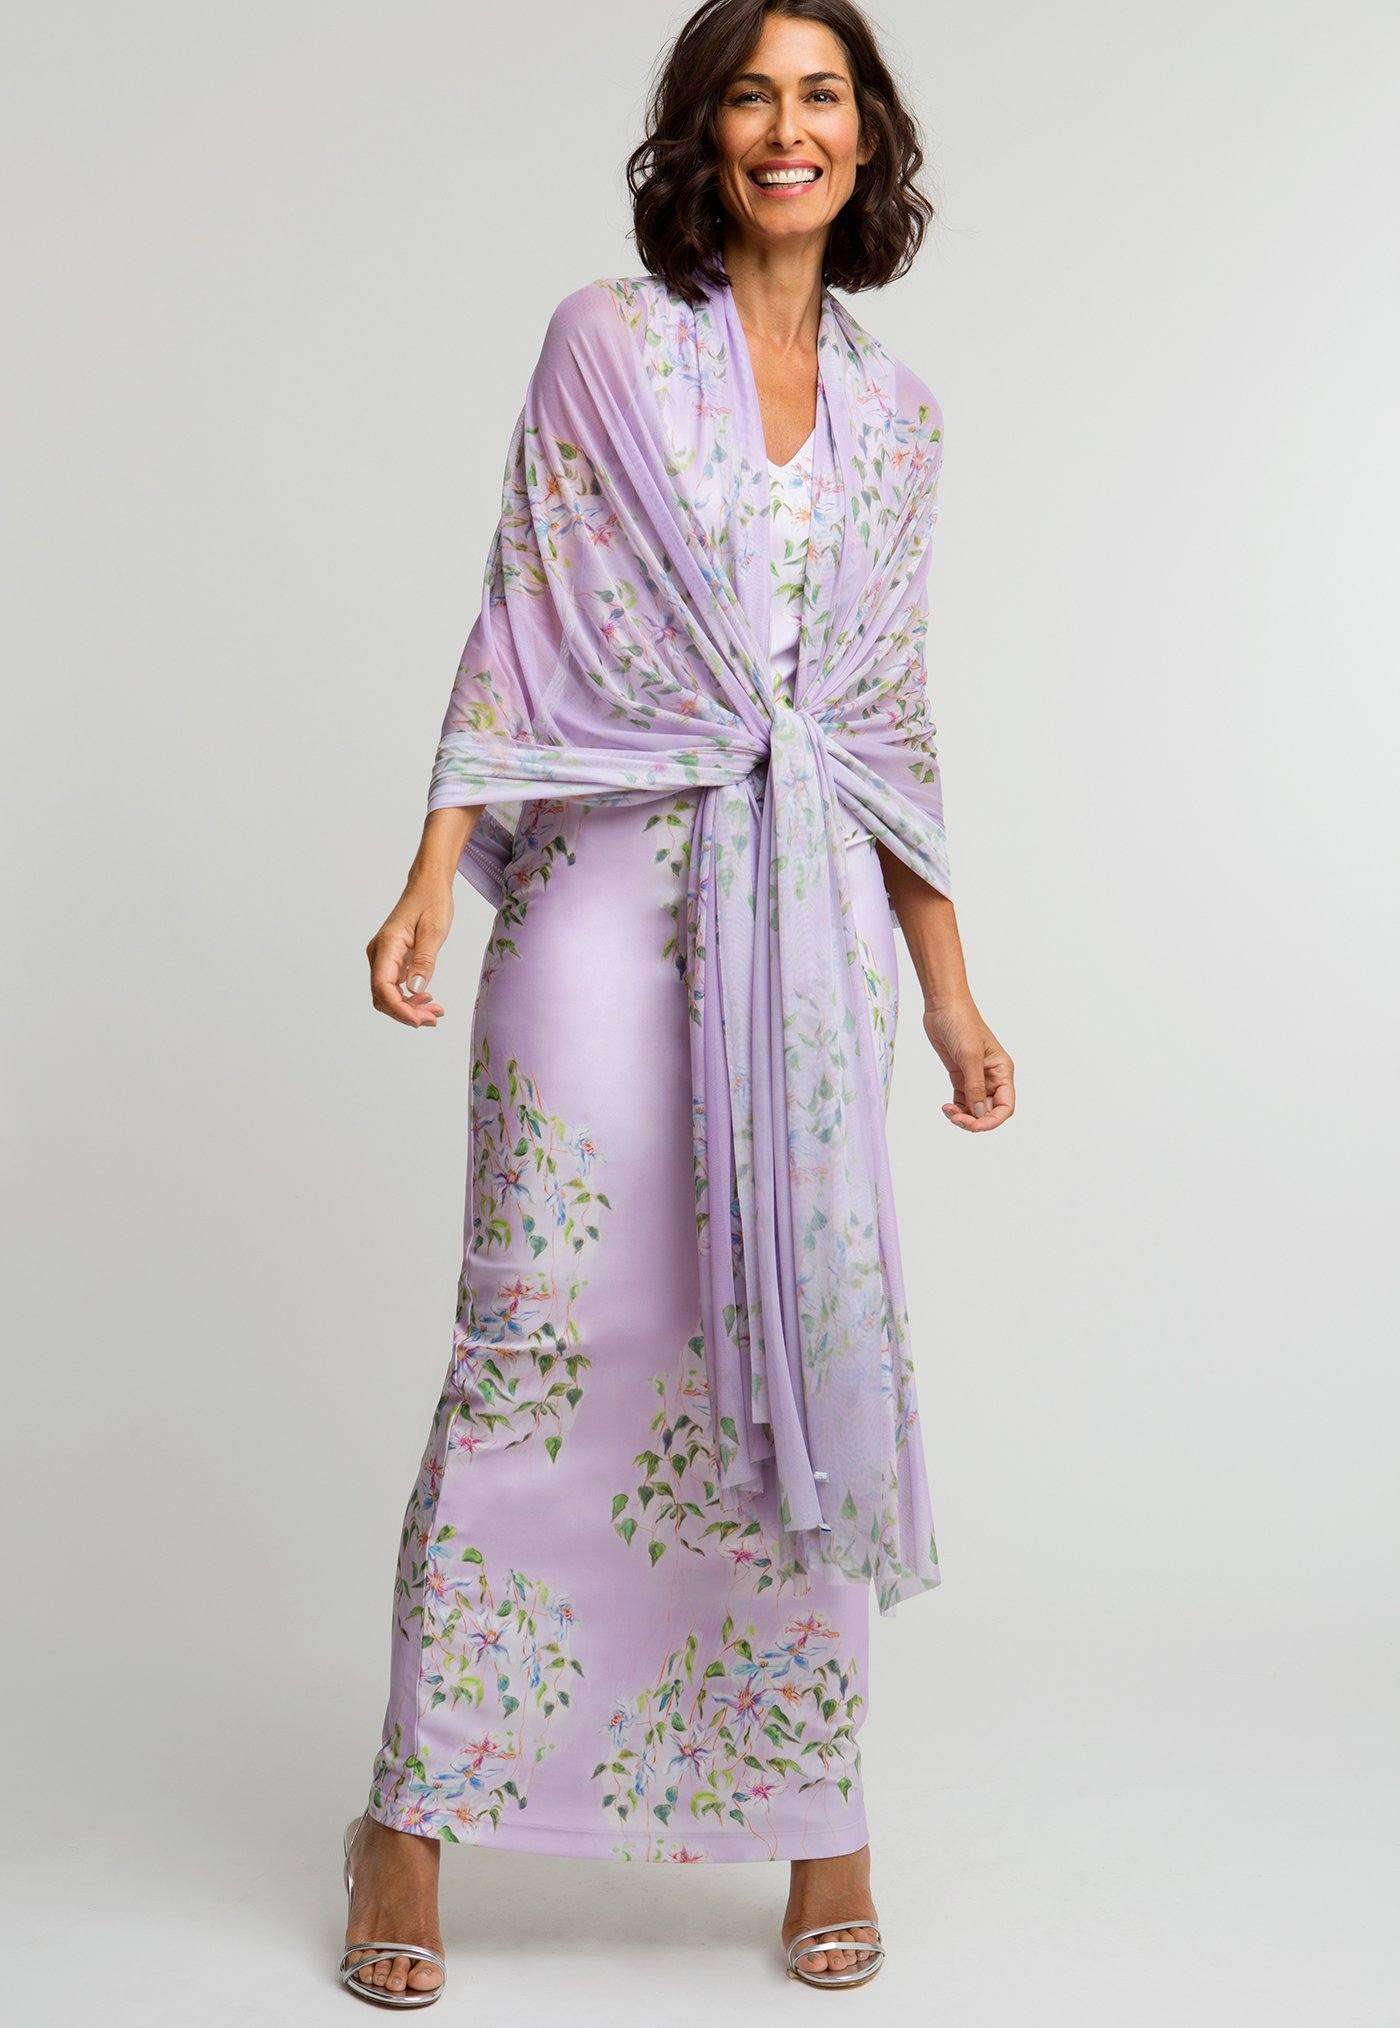 Gala Shawl in Sagaponack paired with matching long Lavinia Dress in Sagaponack front view